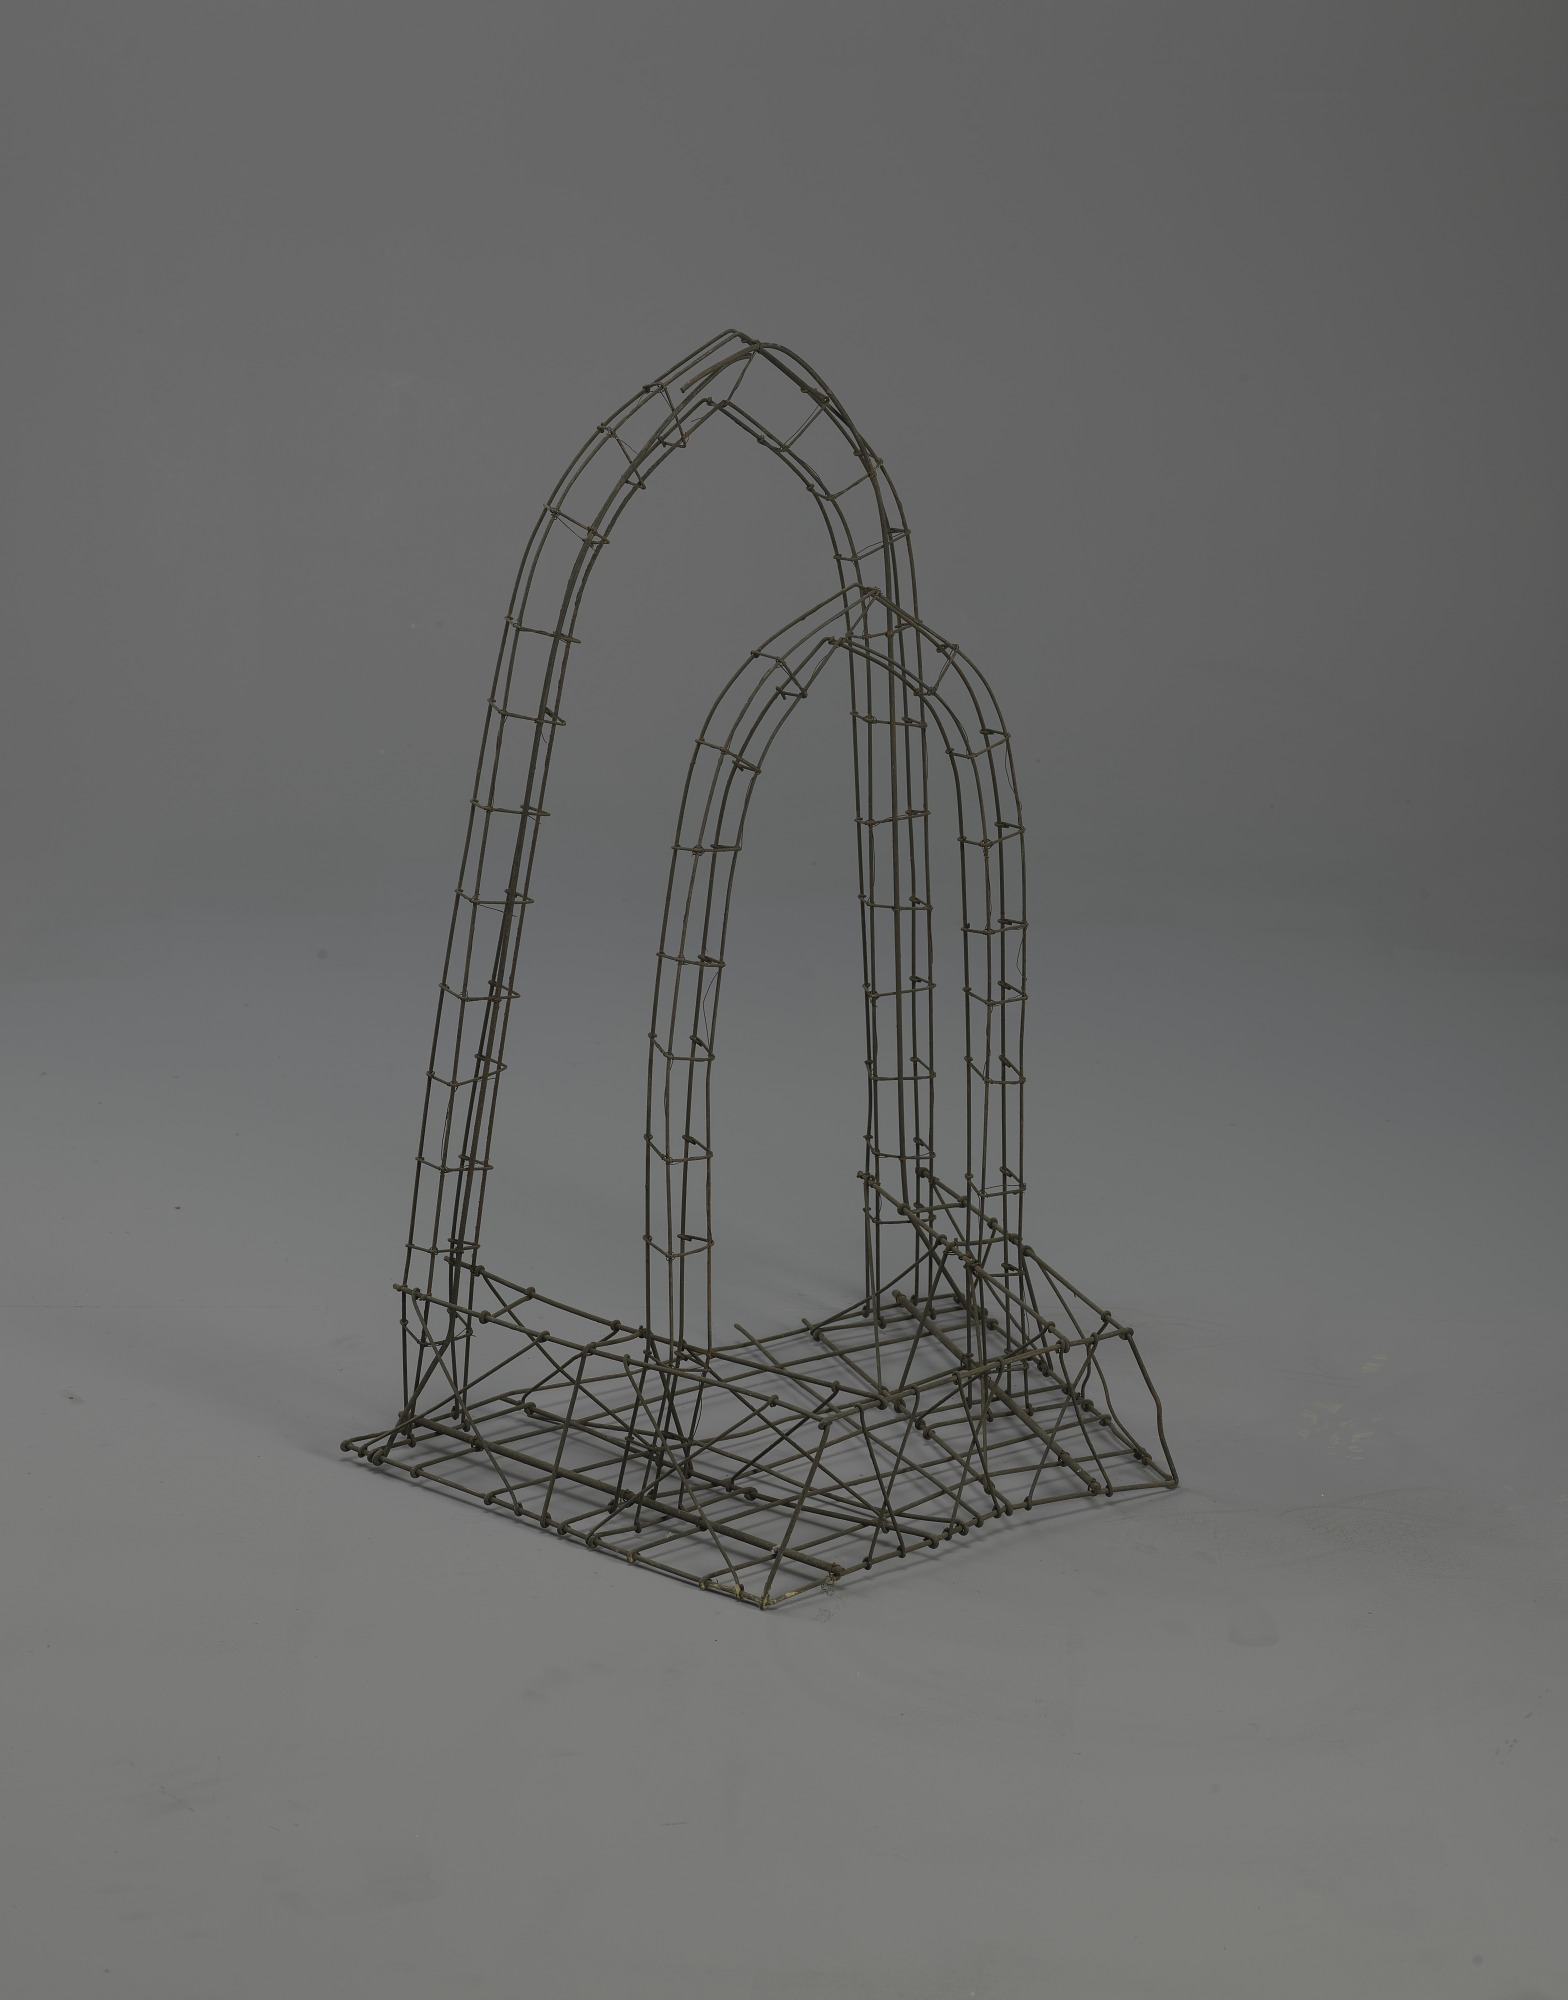 <I>Wire frame, 'Heavenly Ports' double arch</I>